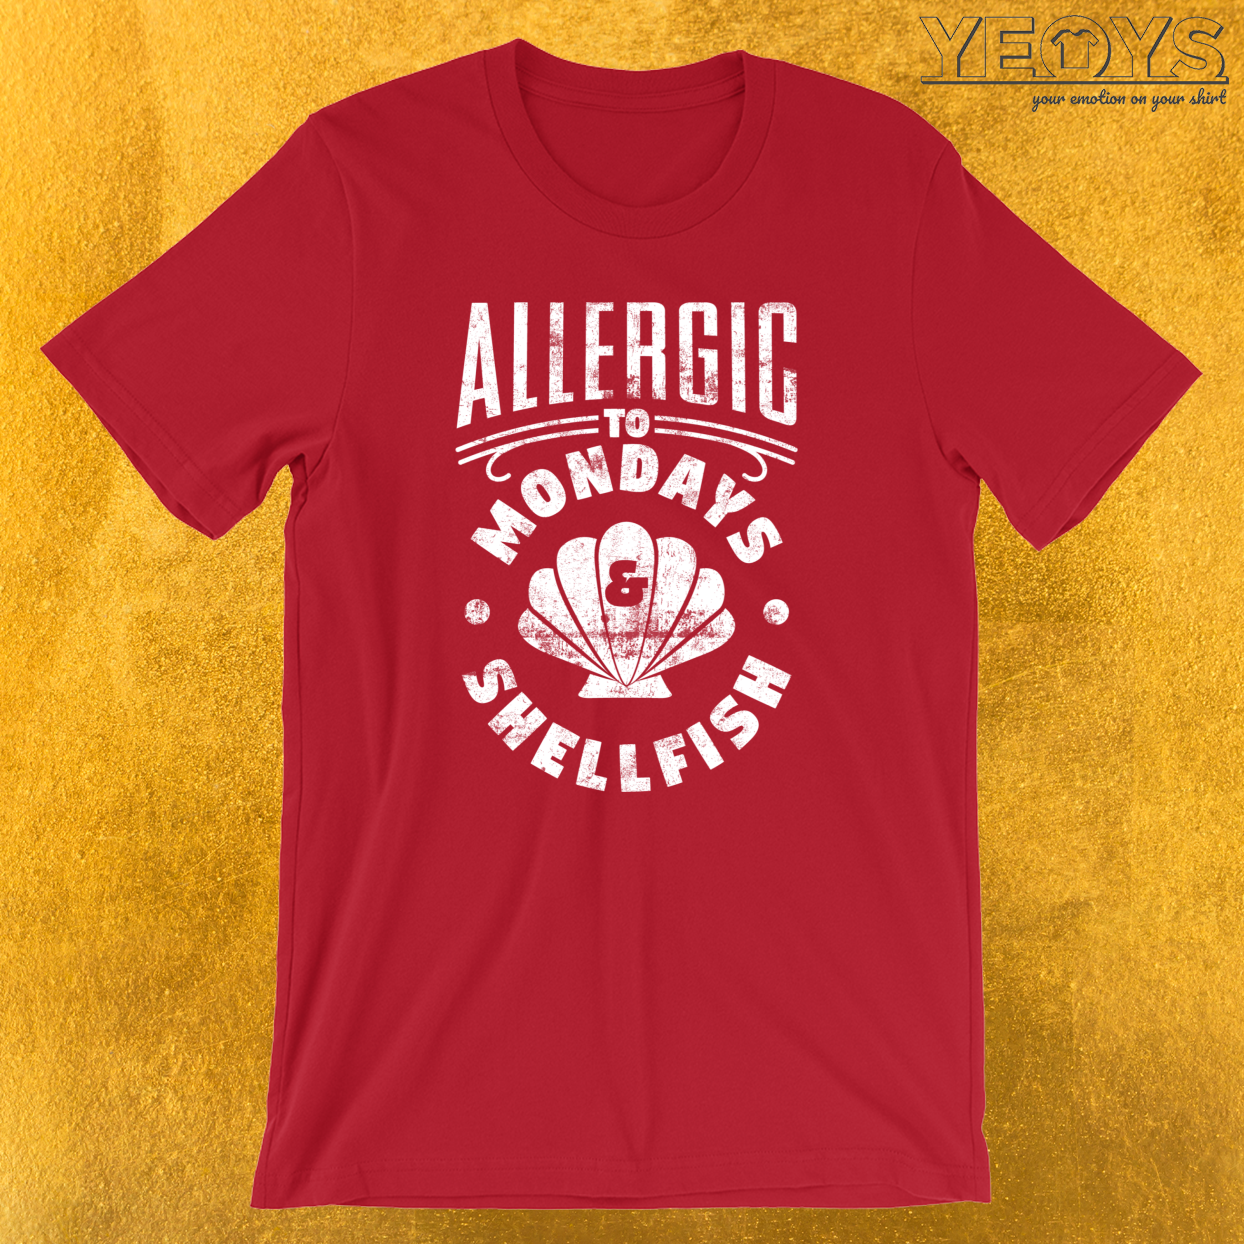 Allergic To Mondays And Shellfish T-Shirt